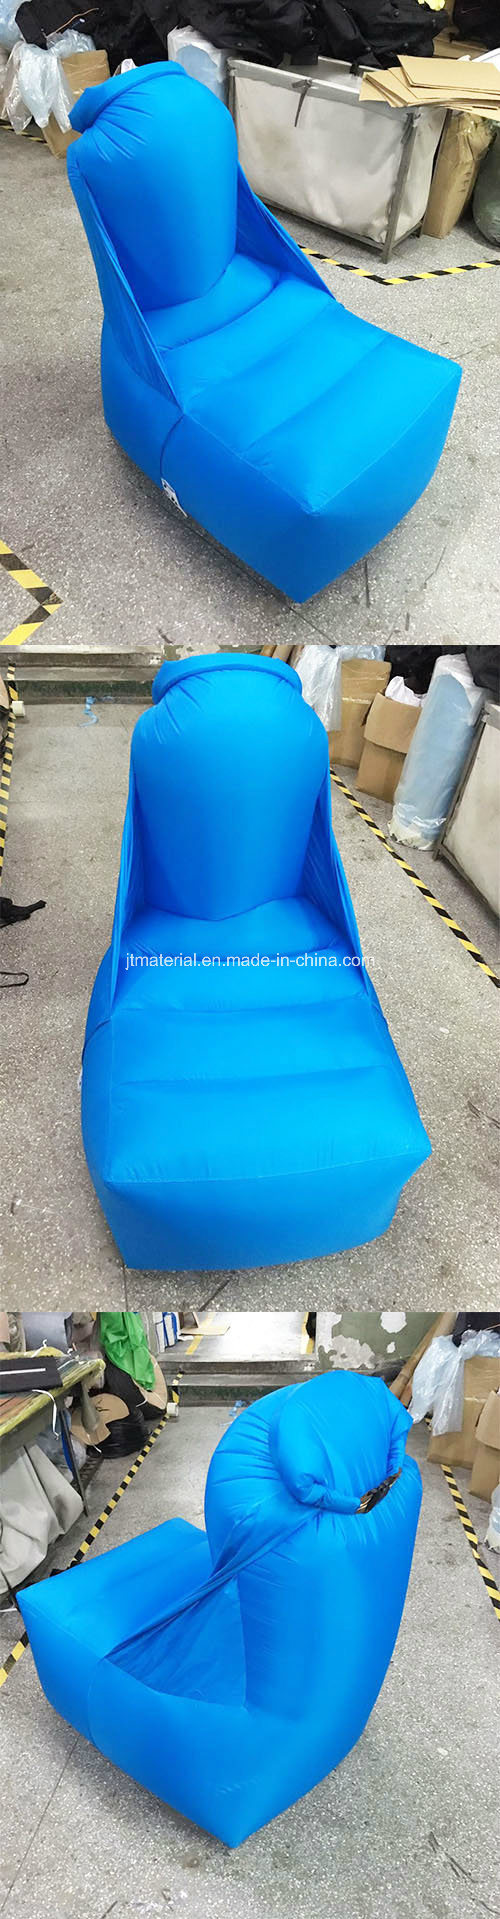 inflatable lounge furniture. China Inflatable Sleeping Air Bag Bed Sofa Chair Designs Laybag Lounge - Sofa, Furniture S